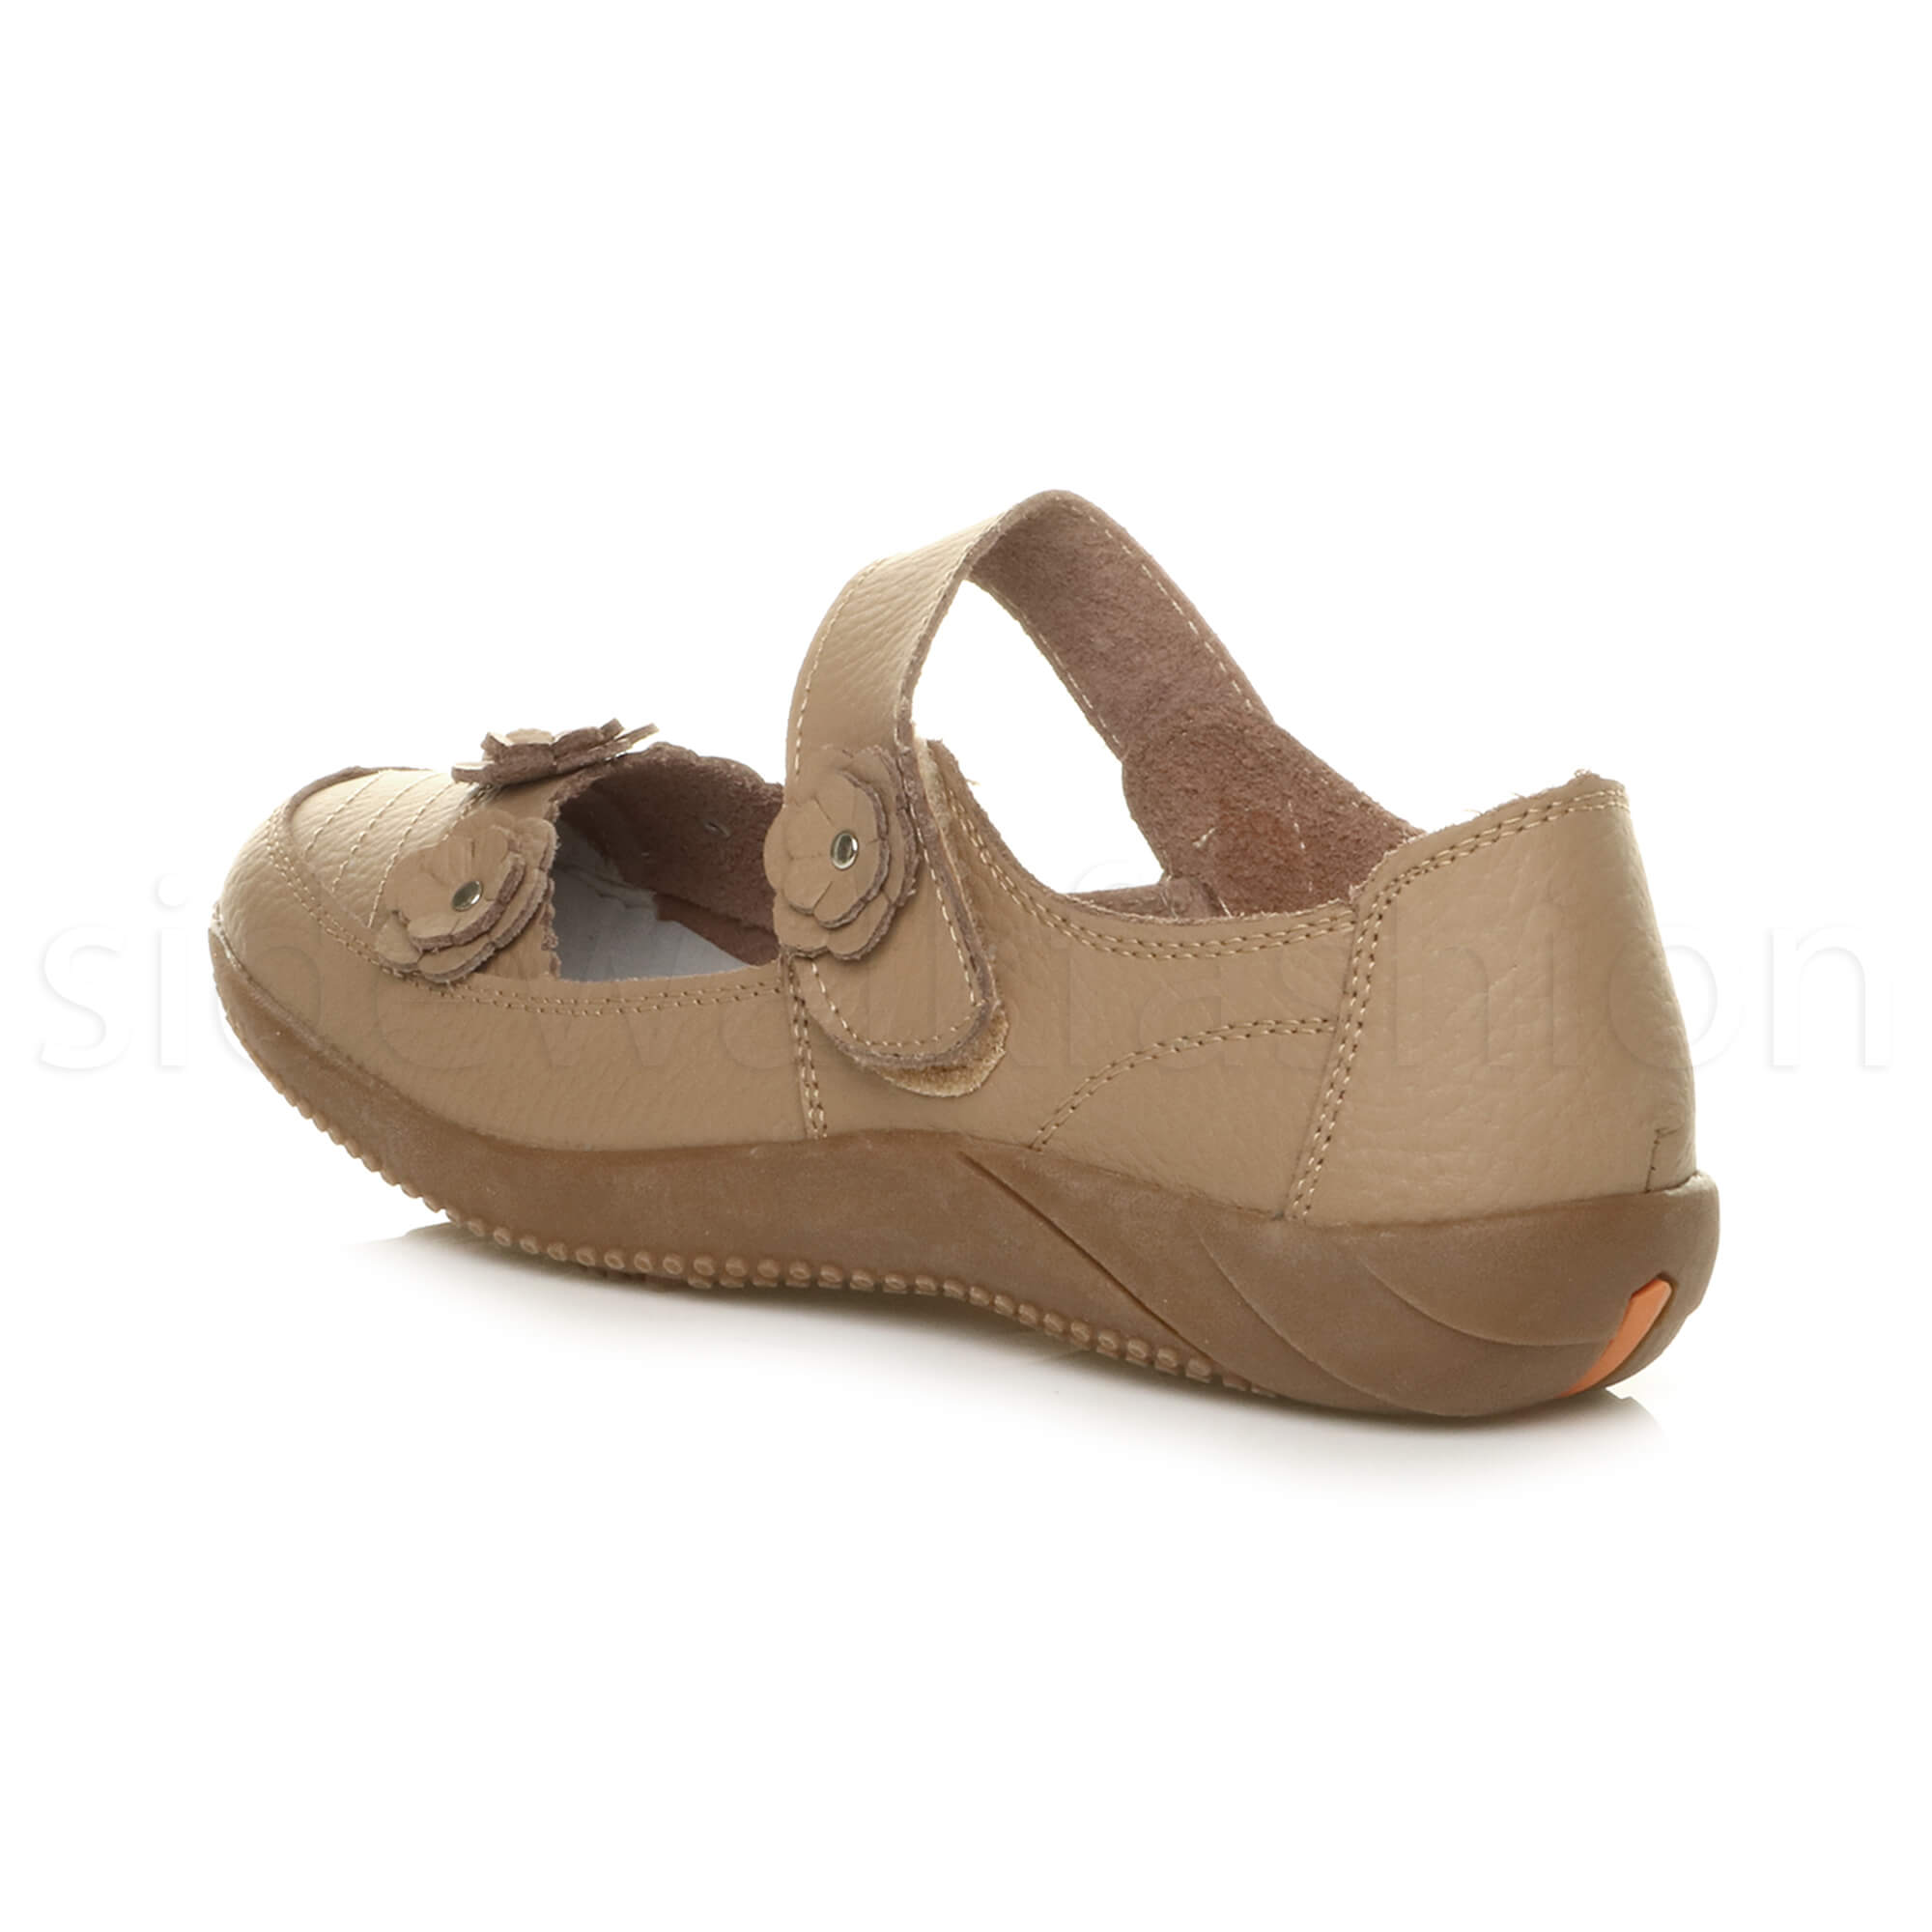 Womens-ladies-leather-comfort-walking-casual-sandals-mary-jane-strap-shoes-size thumbnail 5